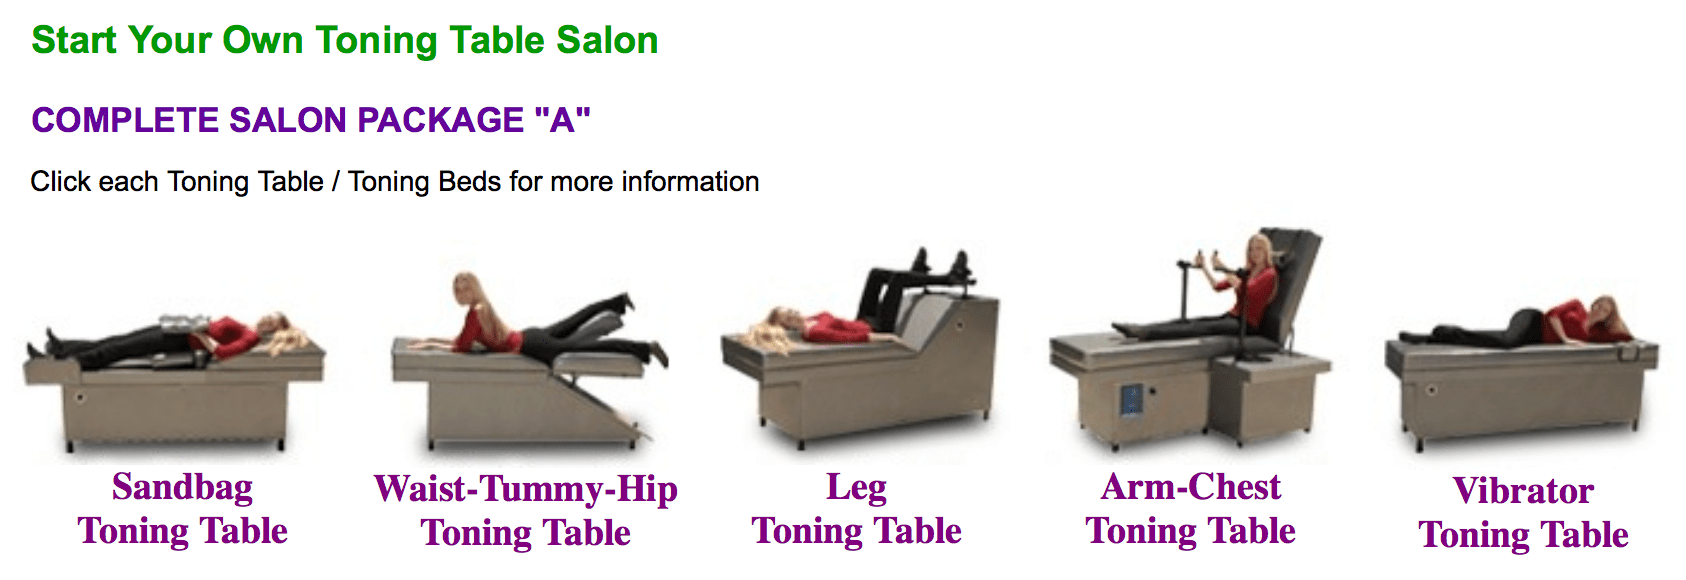 Table Salon Toning Tables Exercise Business Opportunity Lifetime Wellness